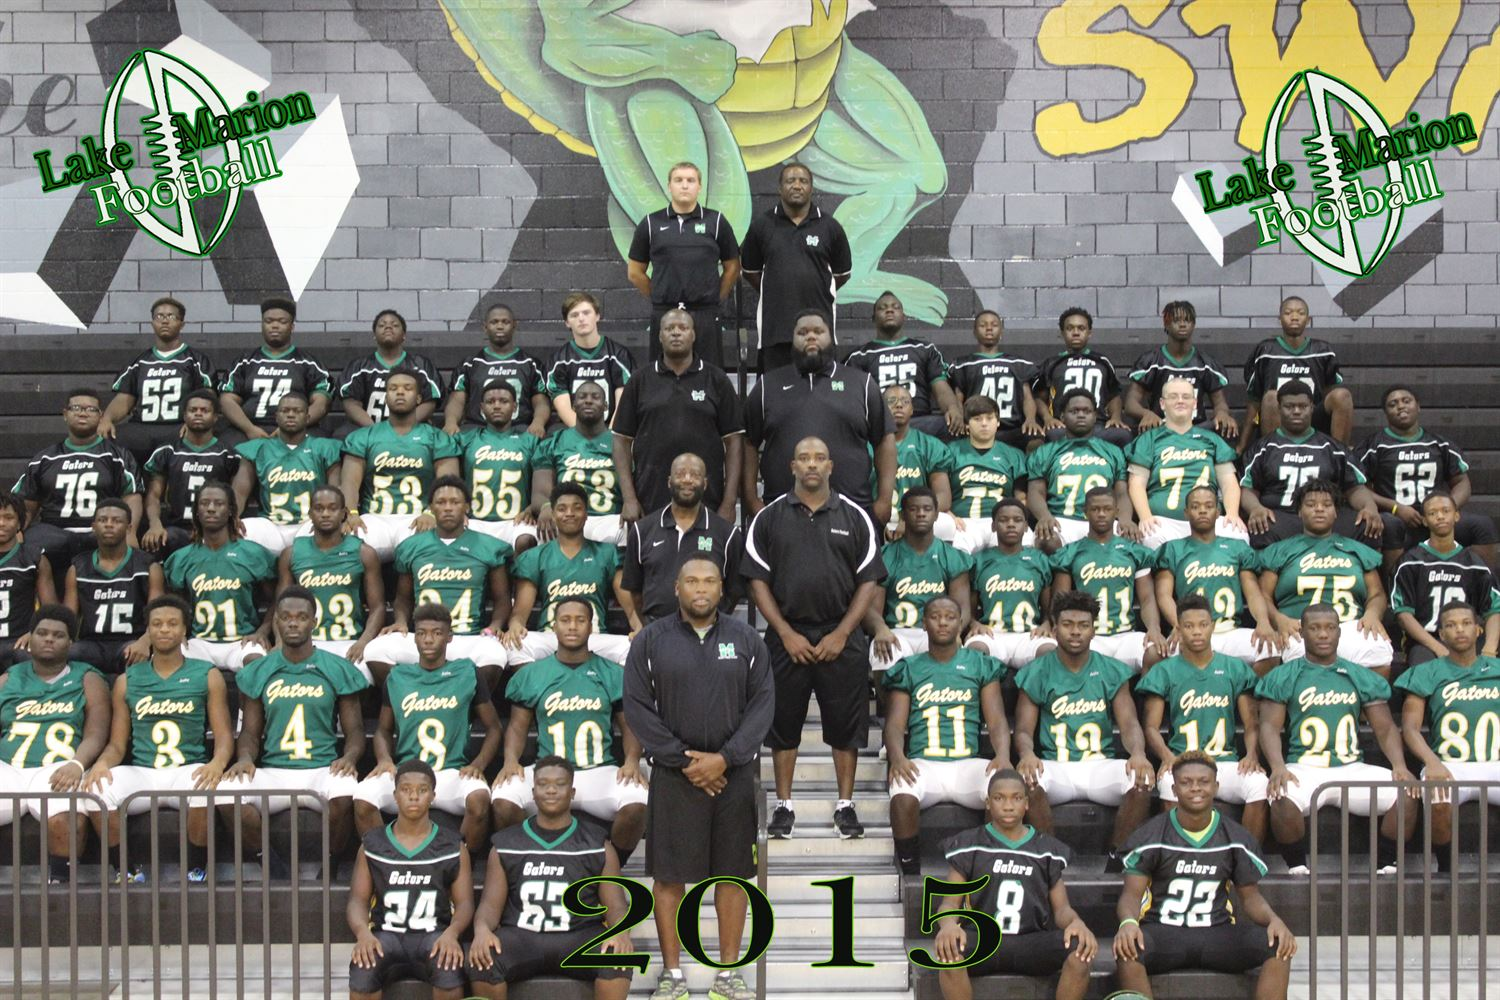 Lake Marion High School - Boys Varsity Football